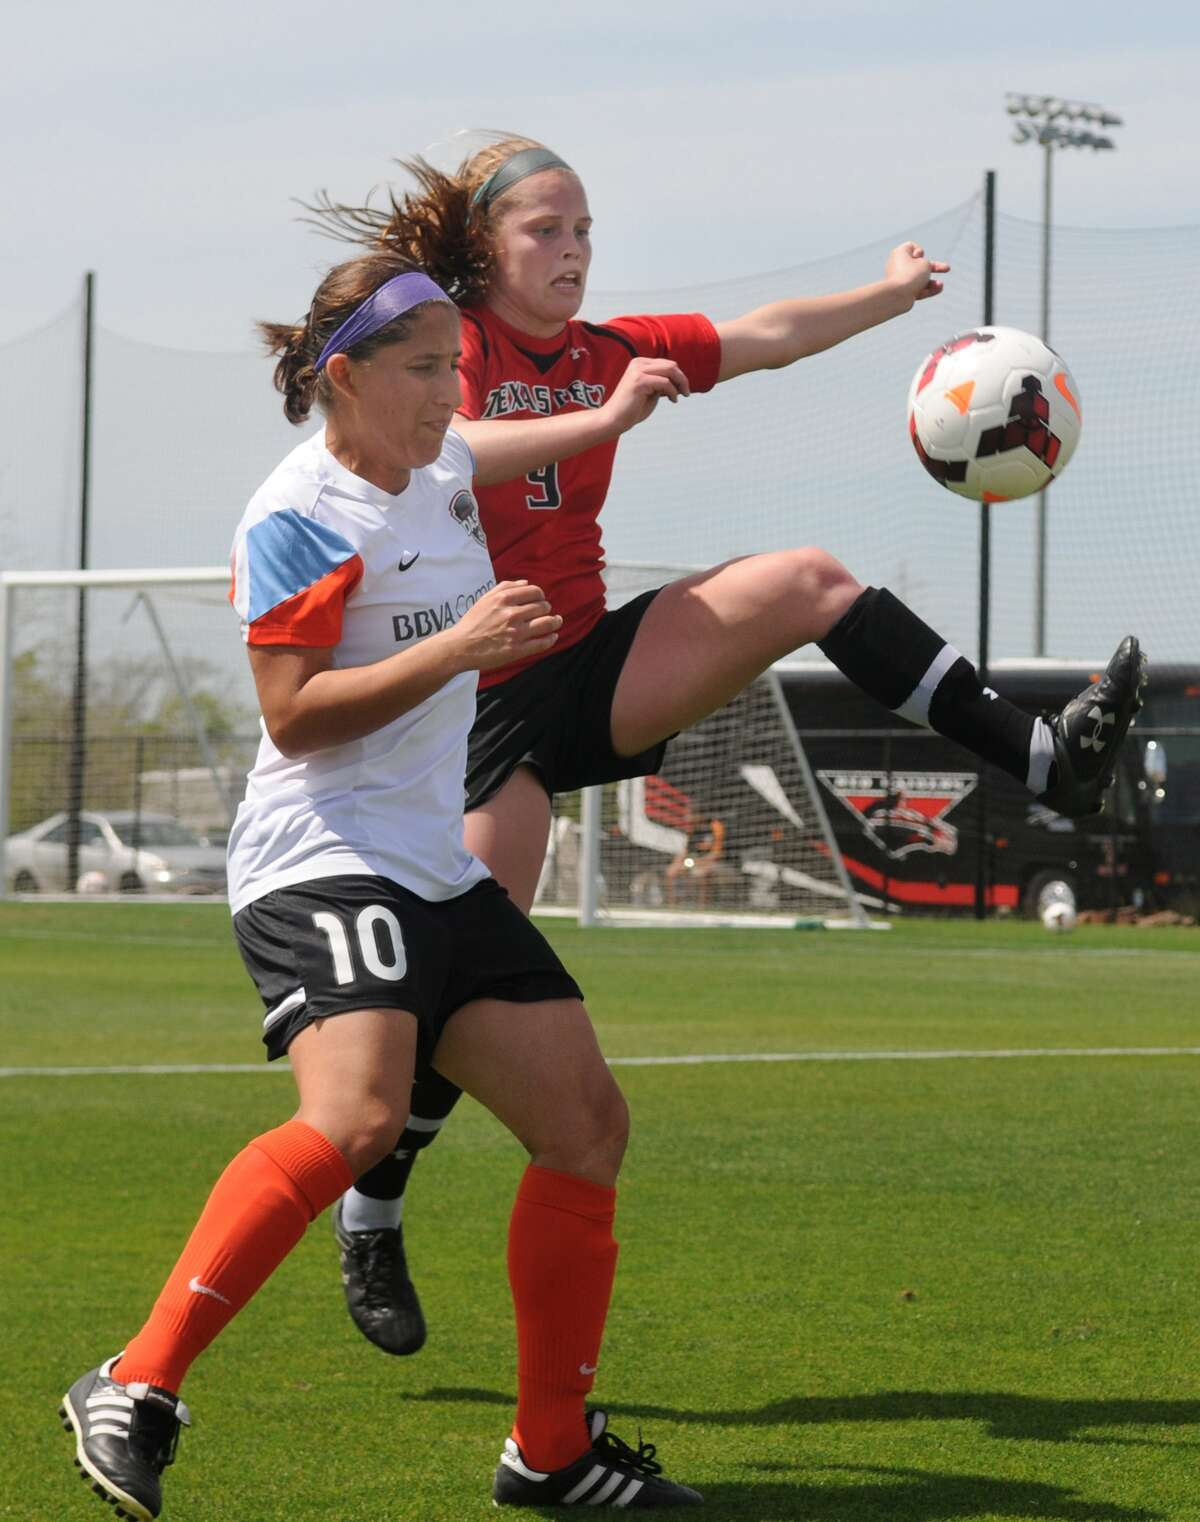 Houston Dash's Teresa Noyola (#10) works the ball during the team's scrimmage with Texas Tech University at Houston Sports Park.